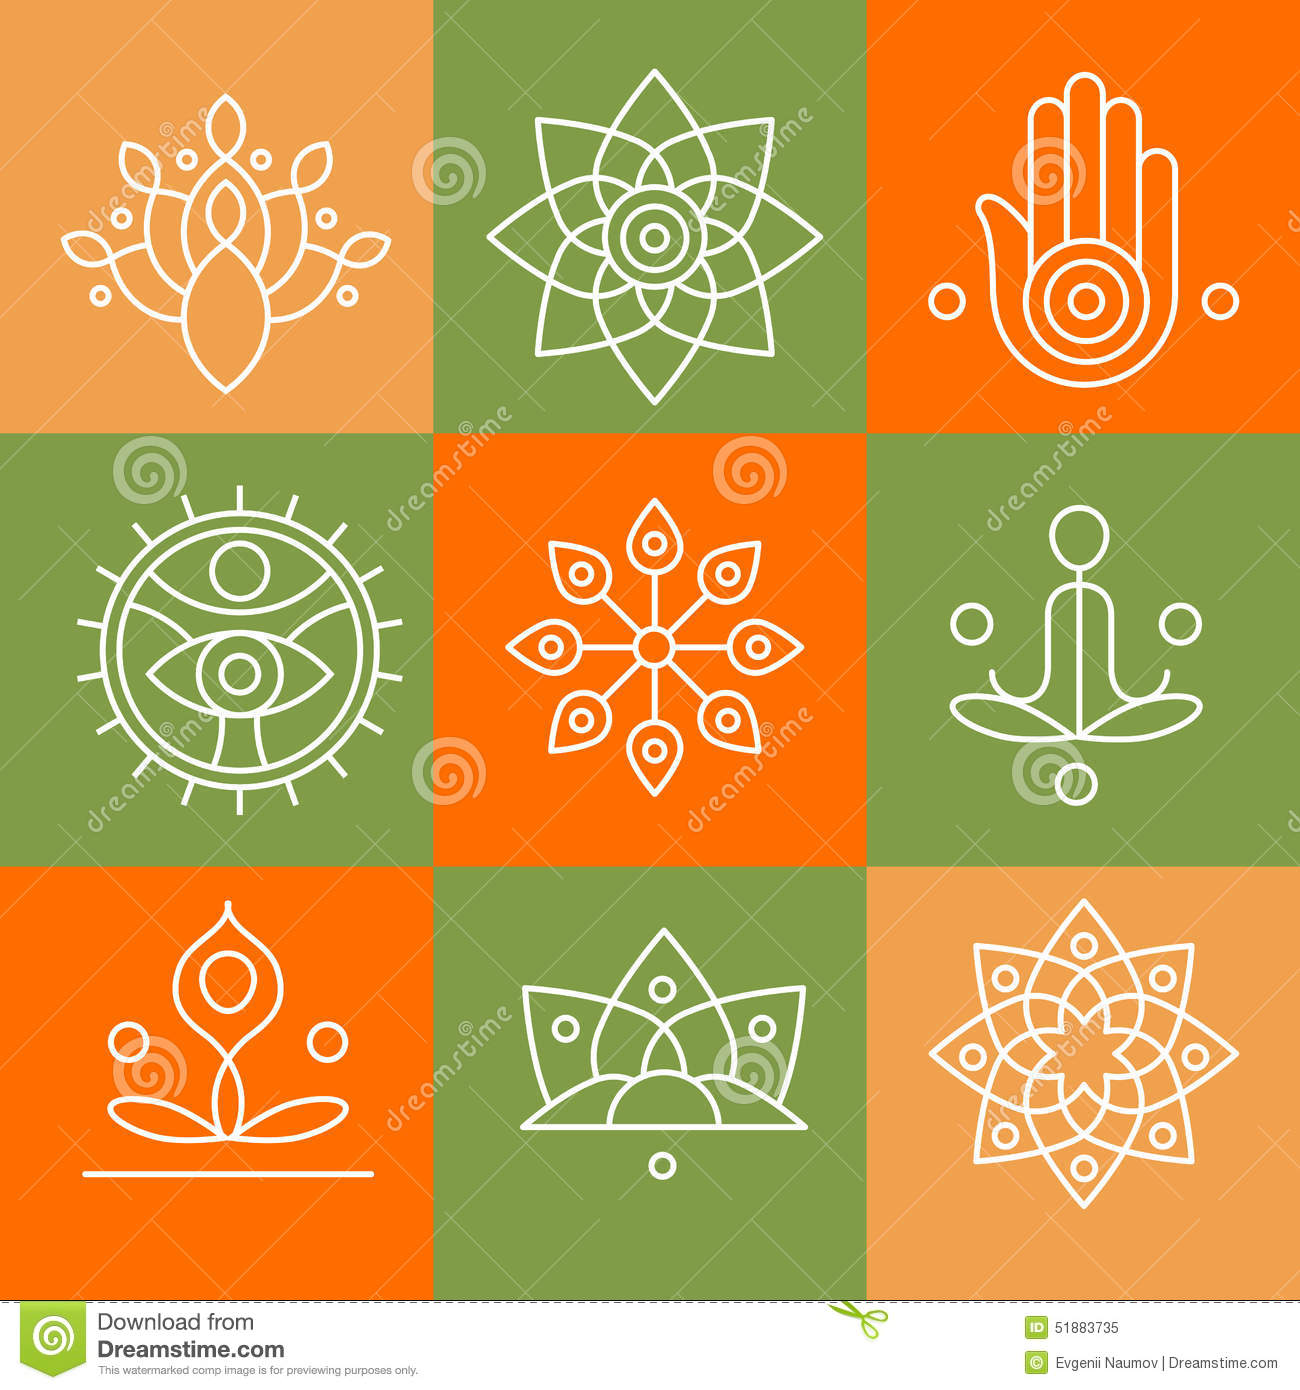 Graphic Design Elements Line : Vector yoga icons and line badges graphic design stock